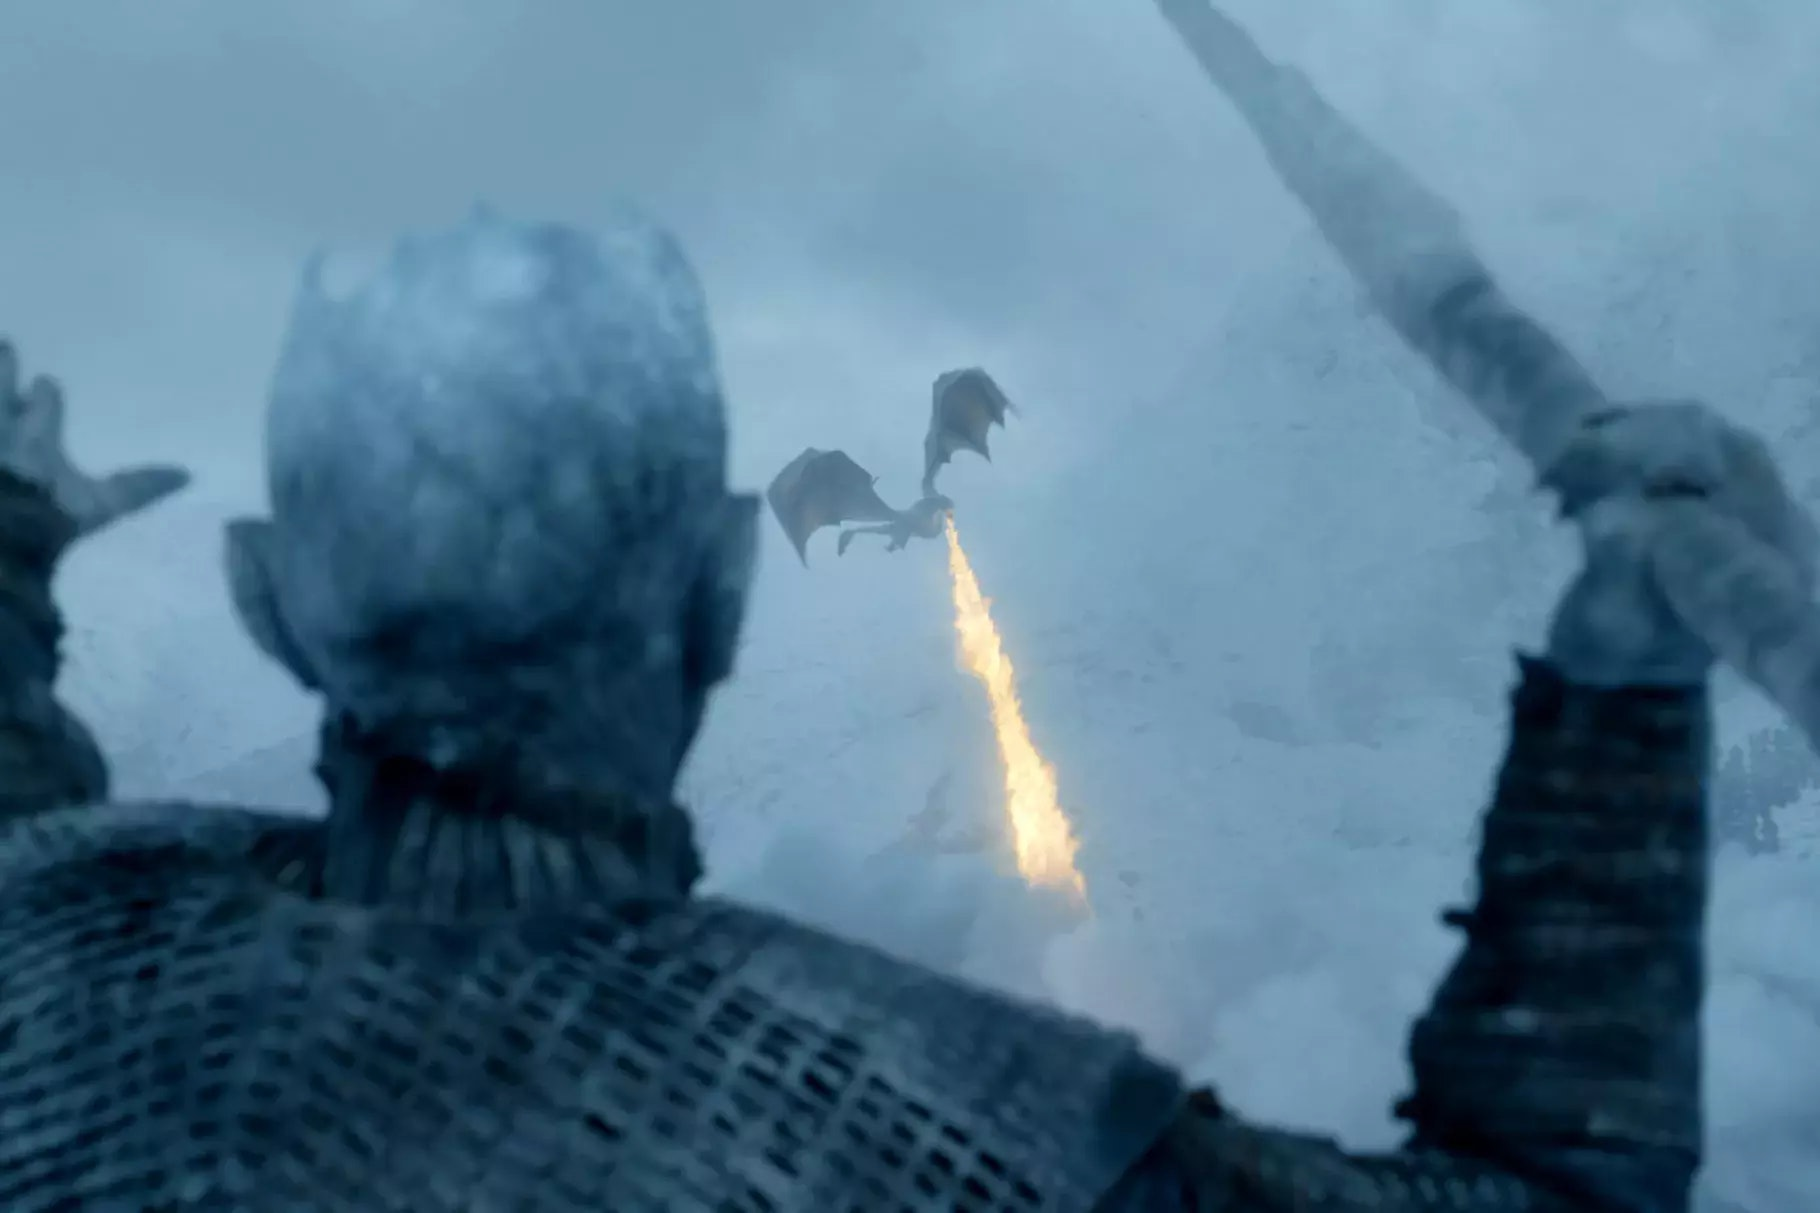 The Night King has incredibly accuracy with that ice spear.